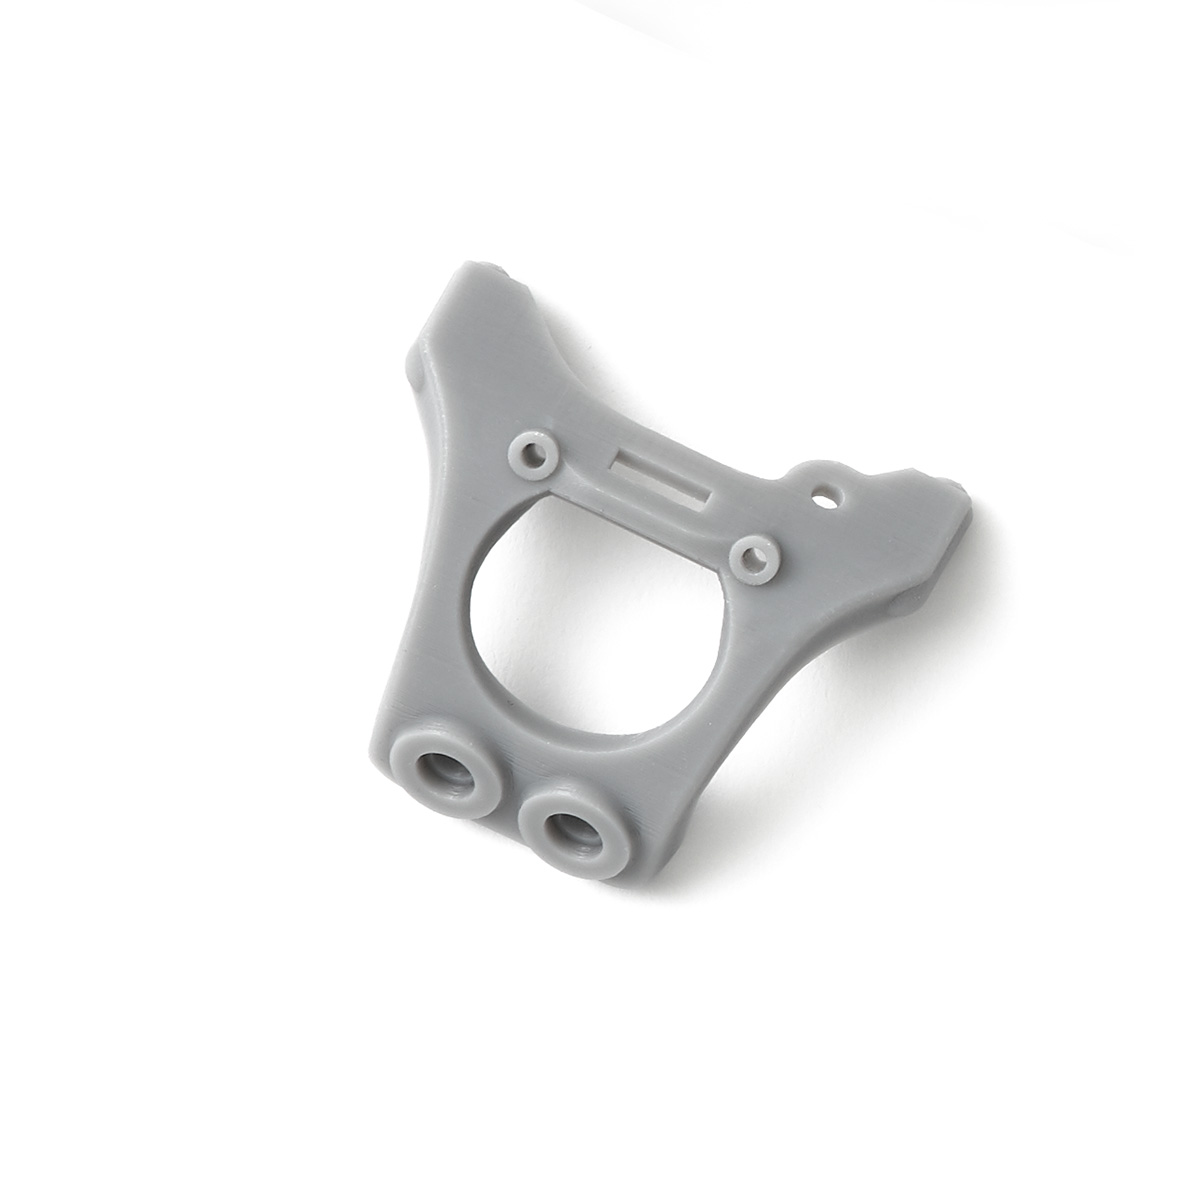 Triangular gray plastic rc car chassis brace 劲爆体育在线直播 printed in Accura Xtreme